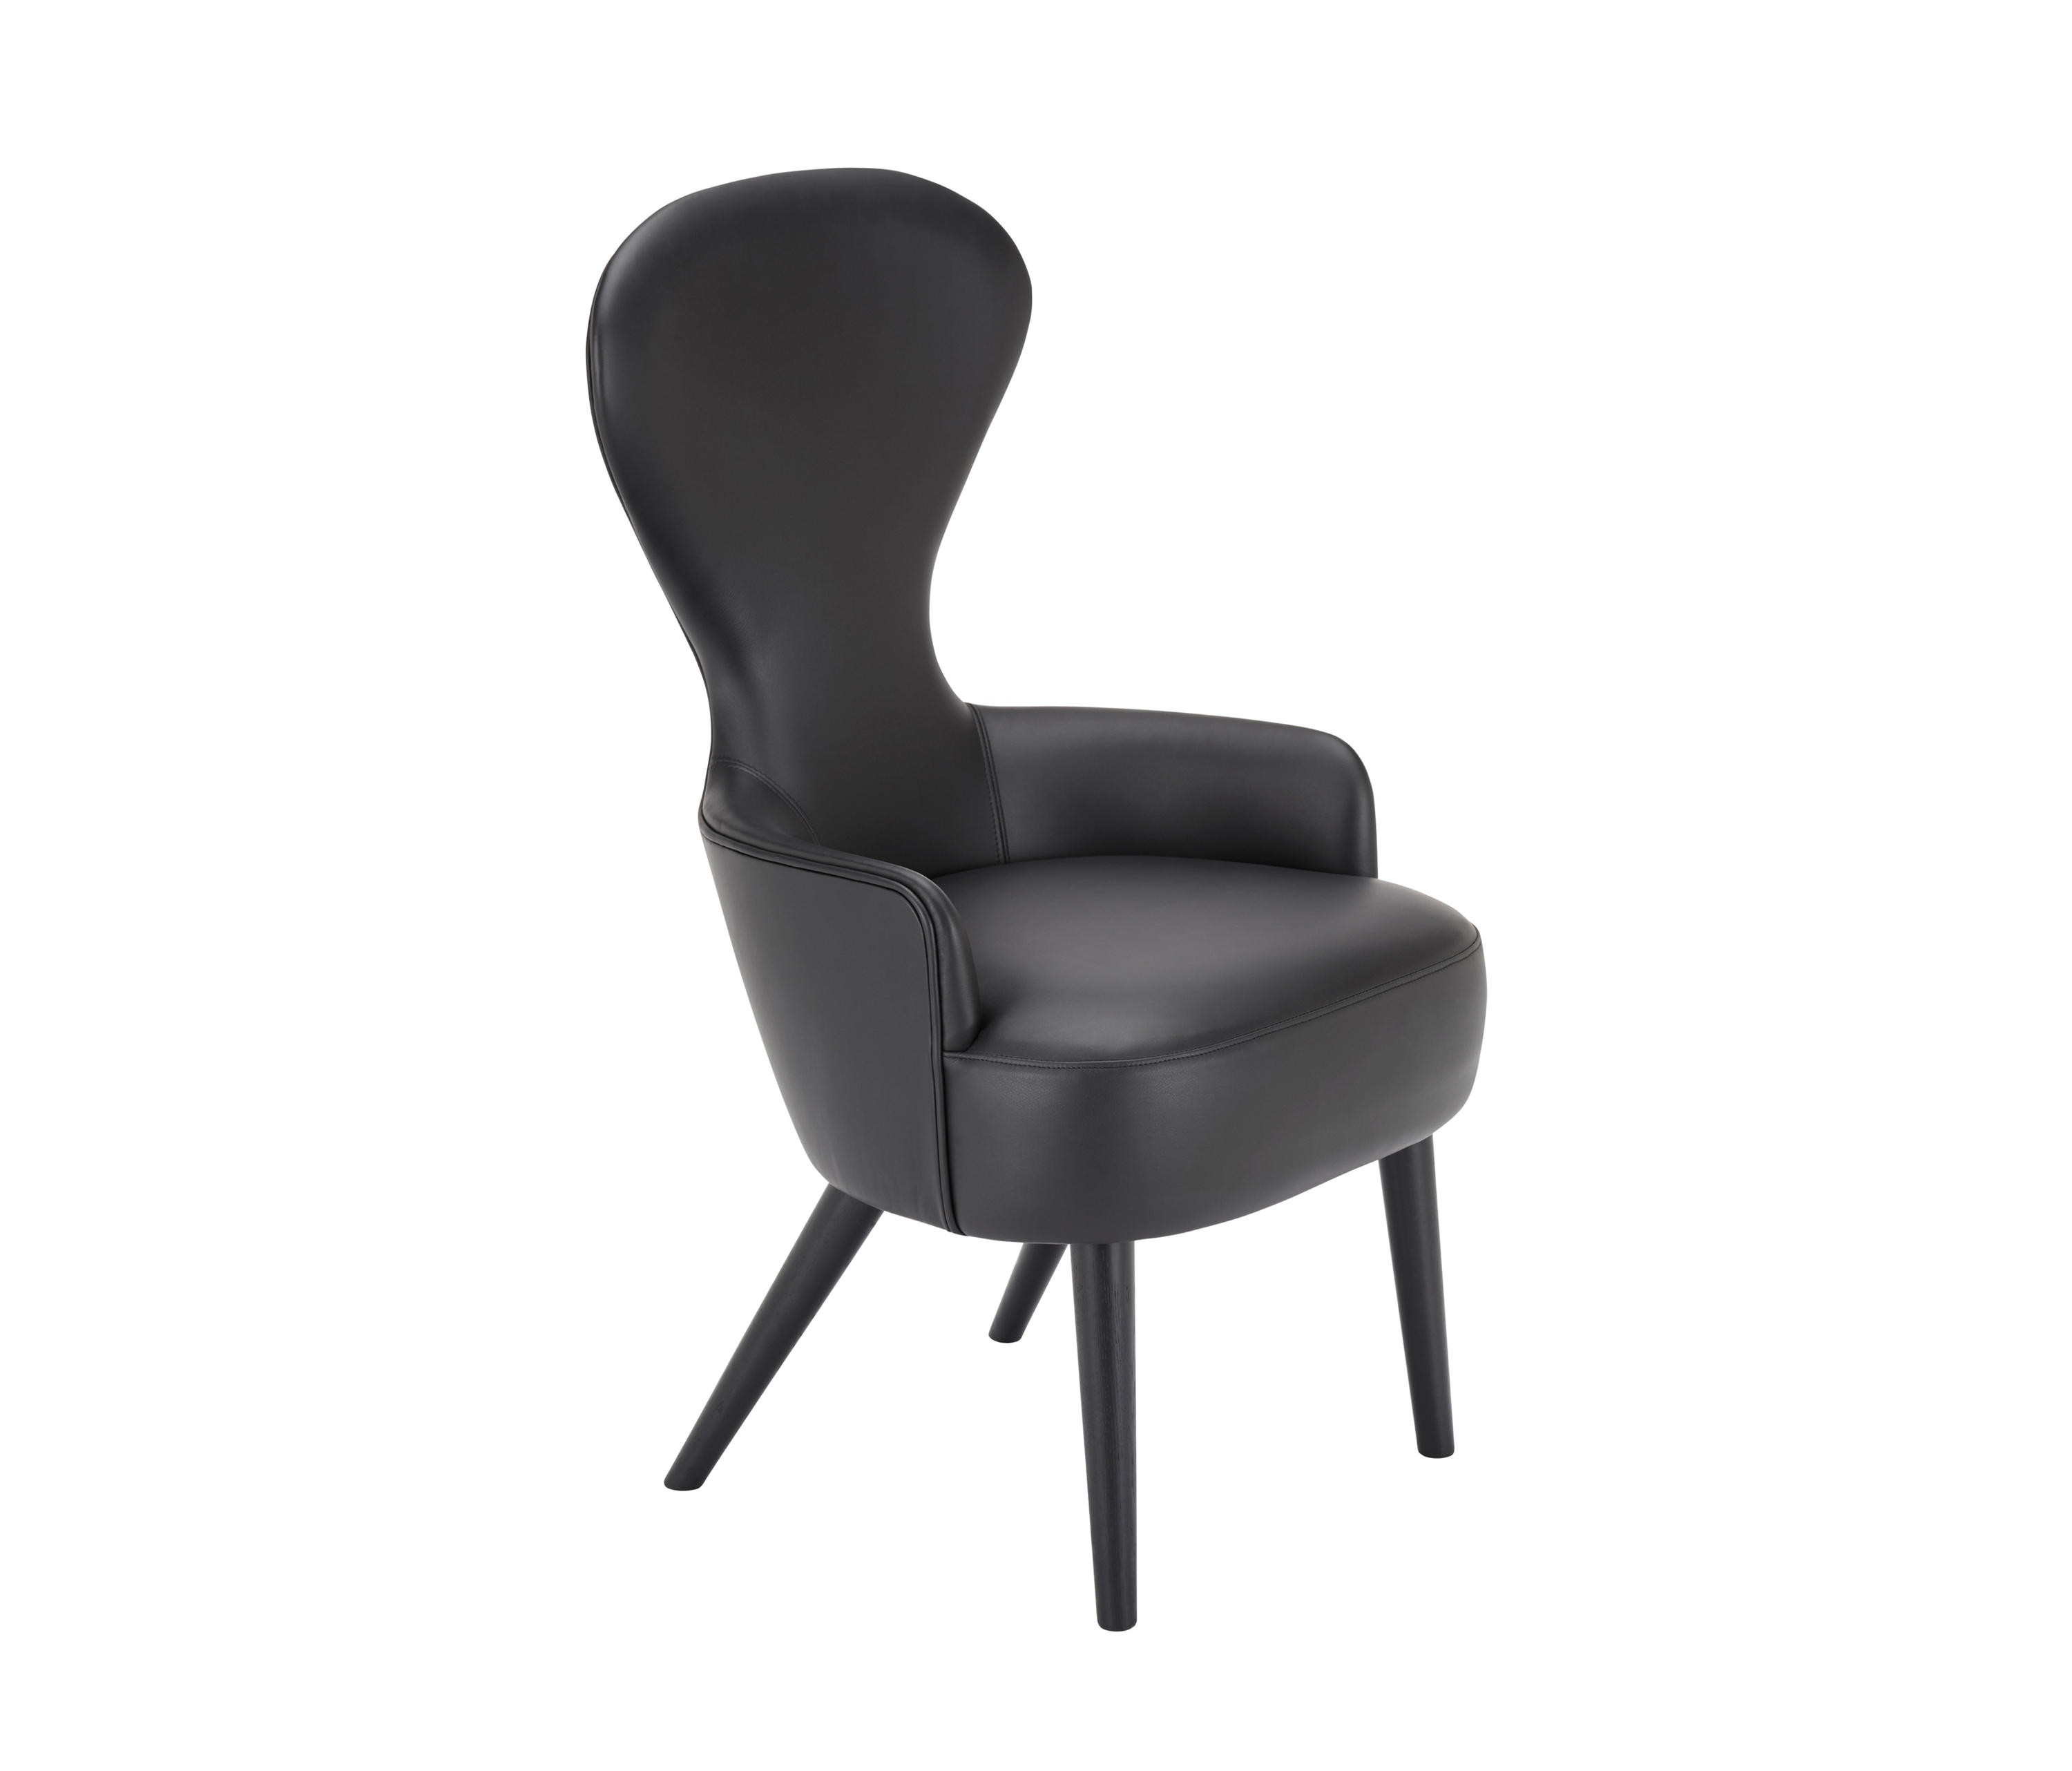 Best ideas about Wingback Dining Chair . Save or Pin WINGBACK DINING CHAIR BLACK LEG ELMOSOFT LEATHER Now.